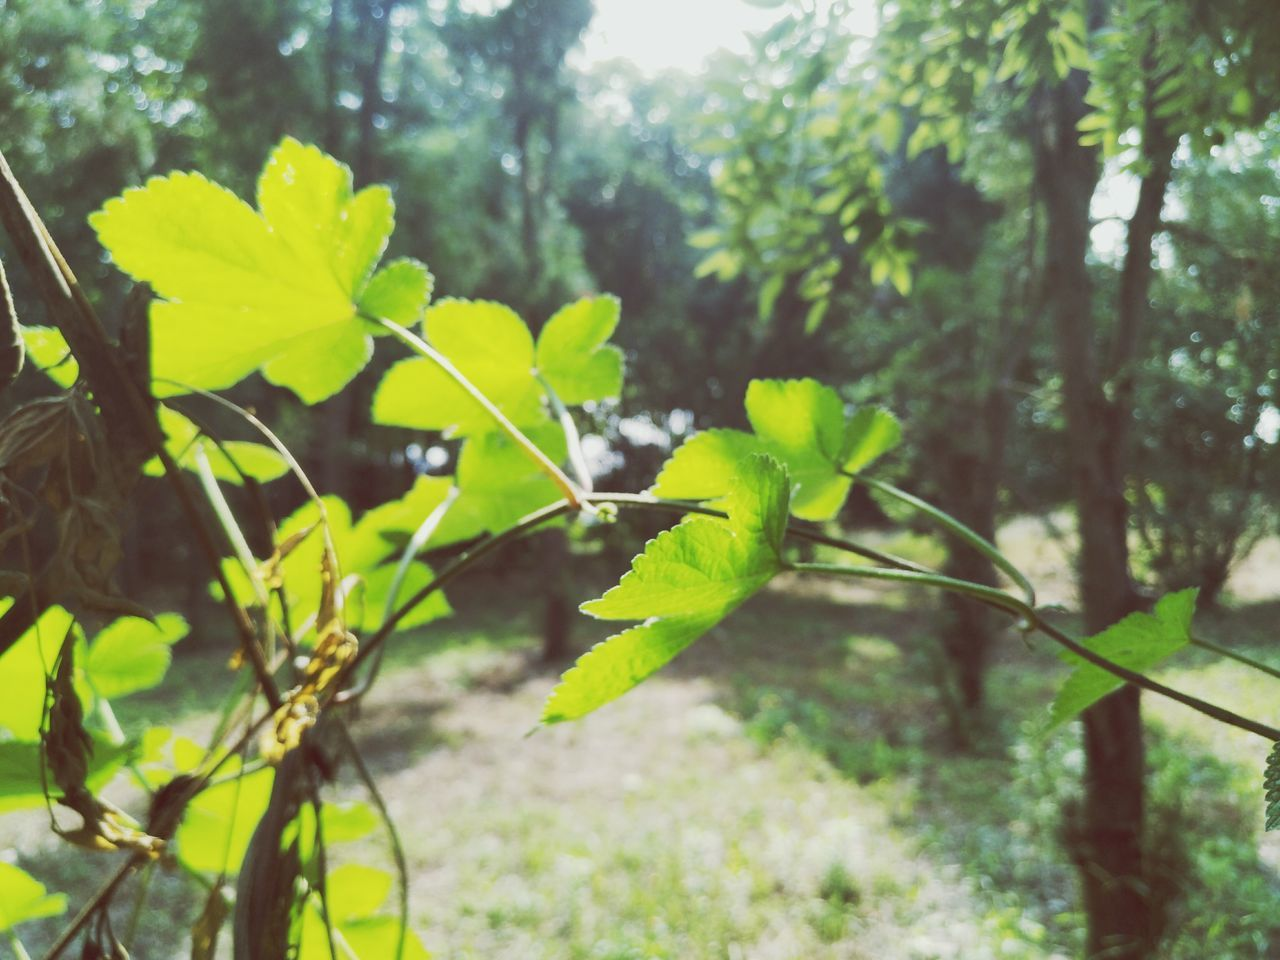 growth, plant, nature, leaf, green color, no people, day, outdoors, beauty in nature, tree, close-up, fragility, freshness